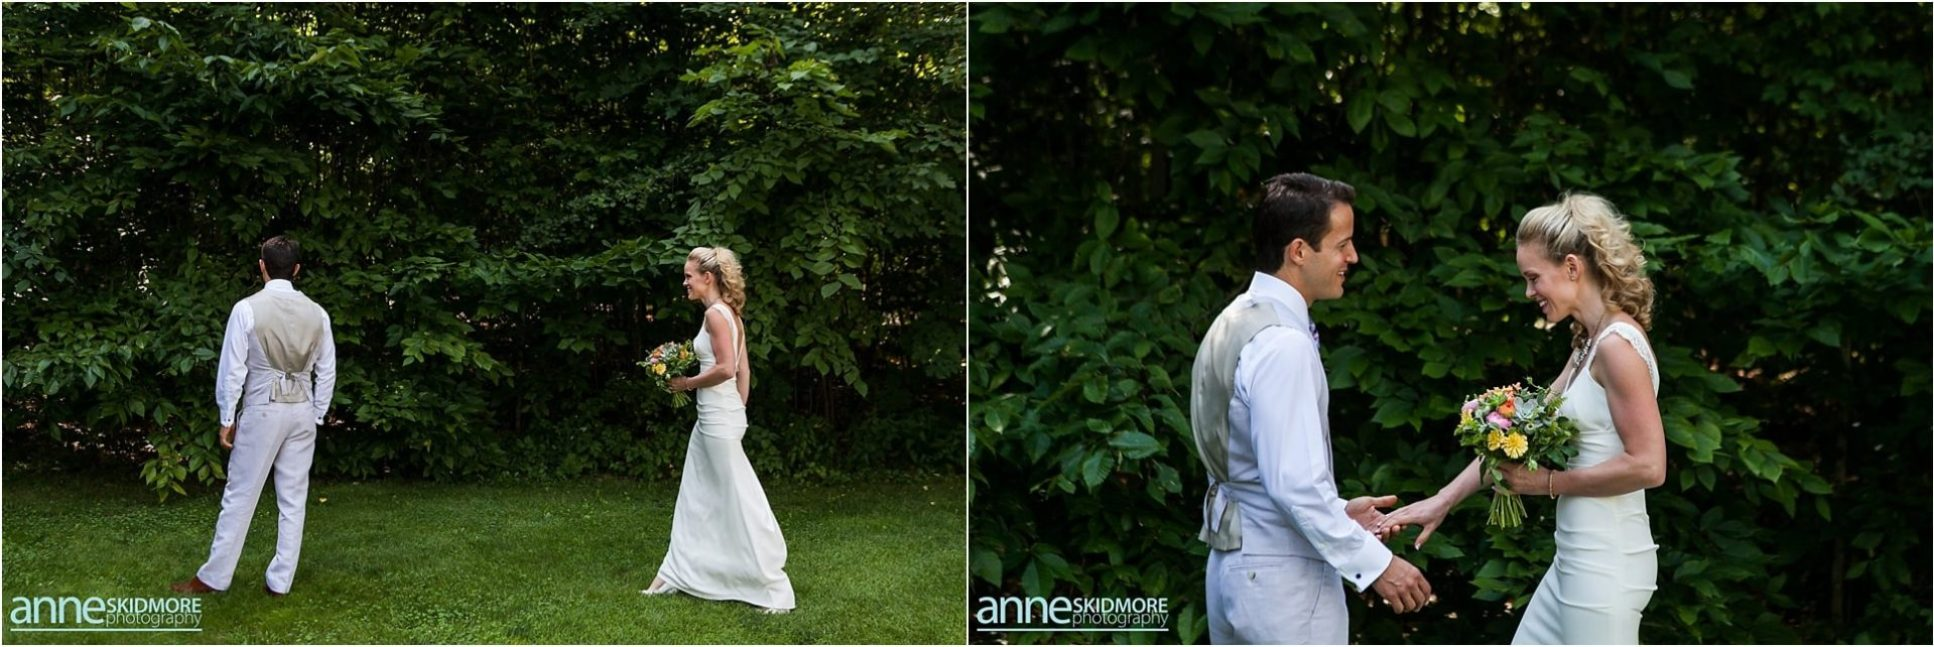 Hardy_Farm_Wedding_0015